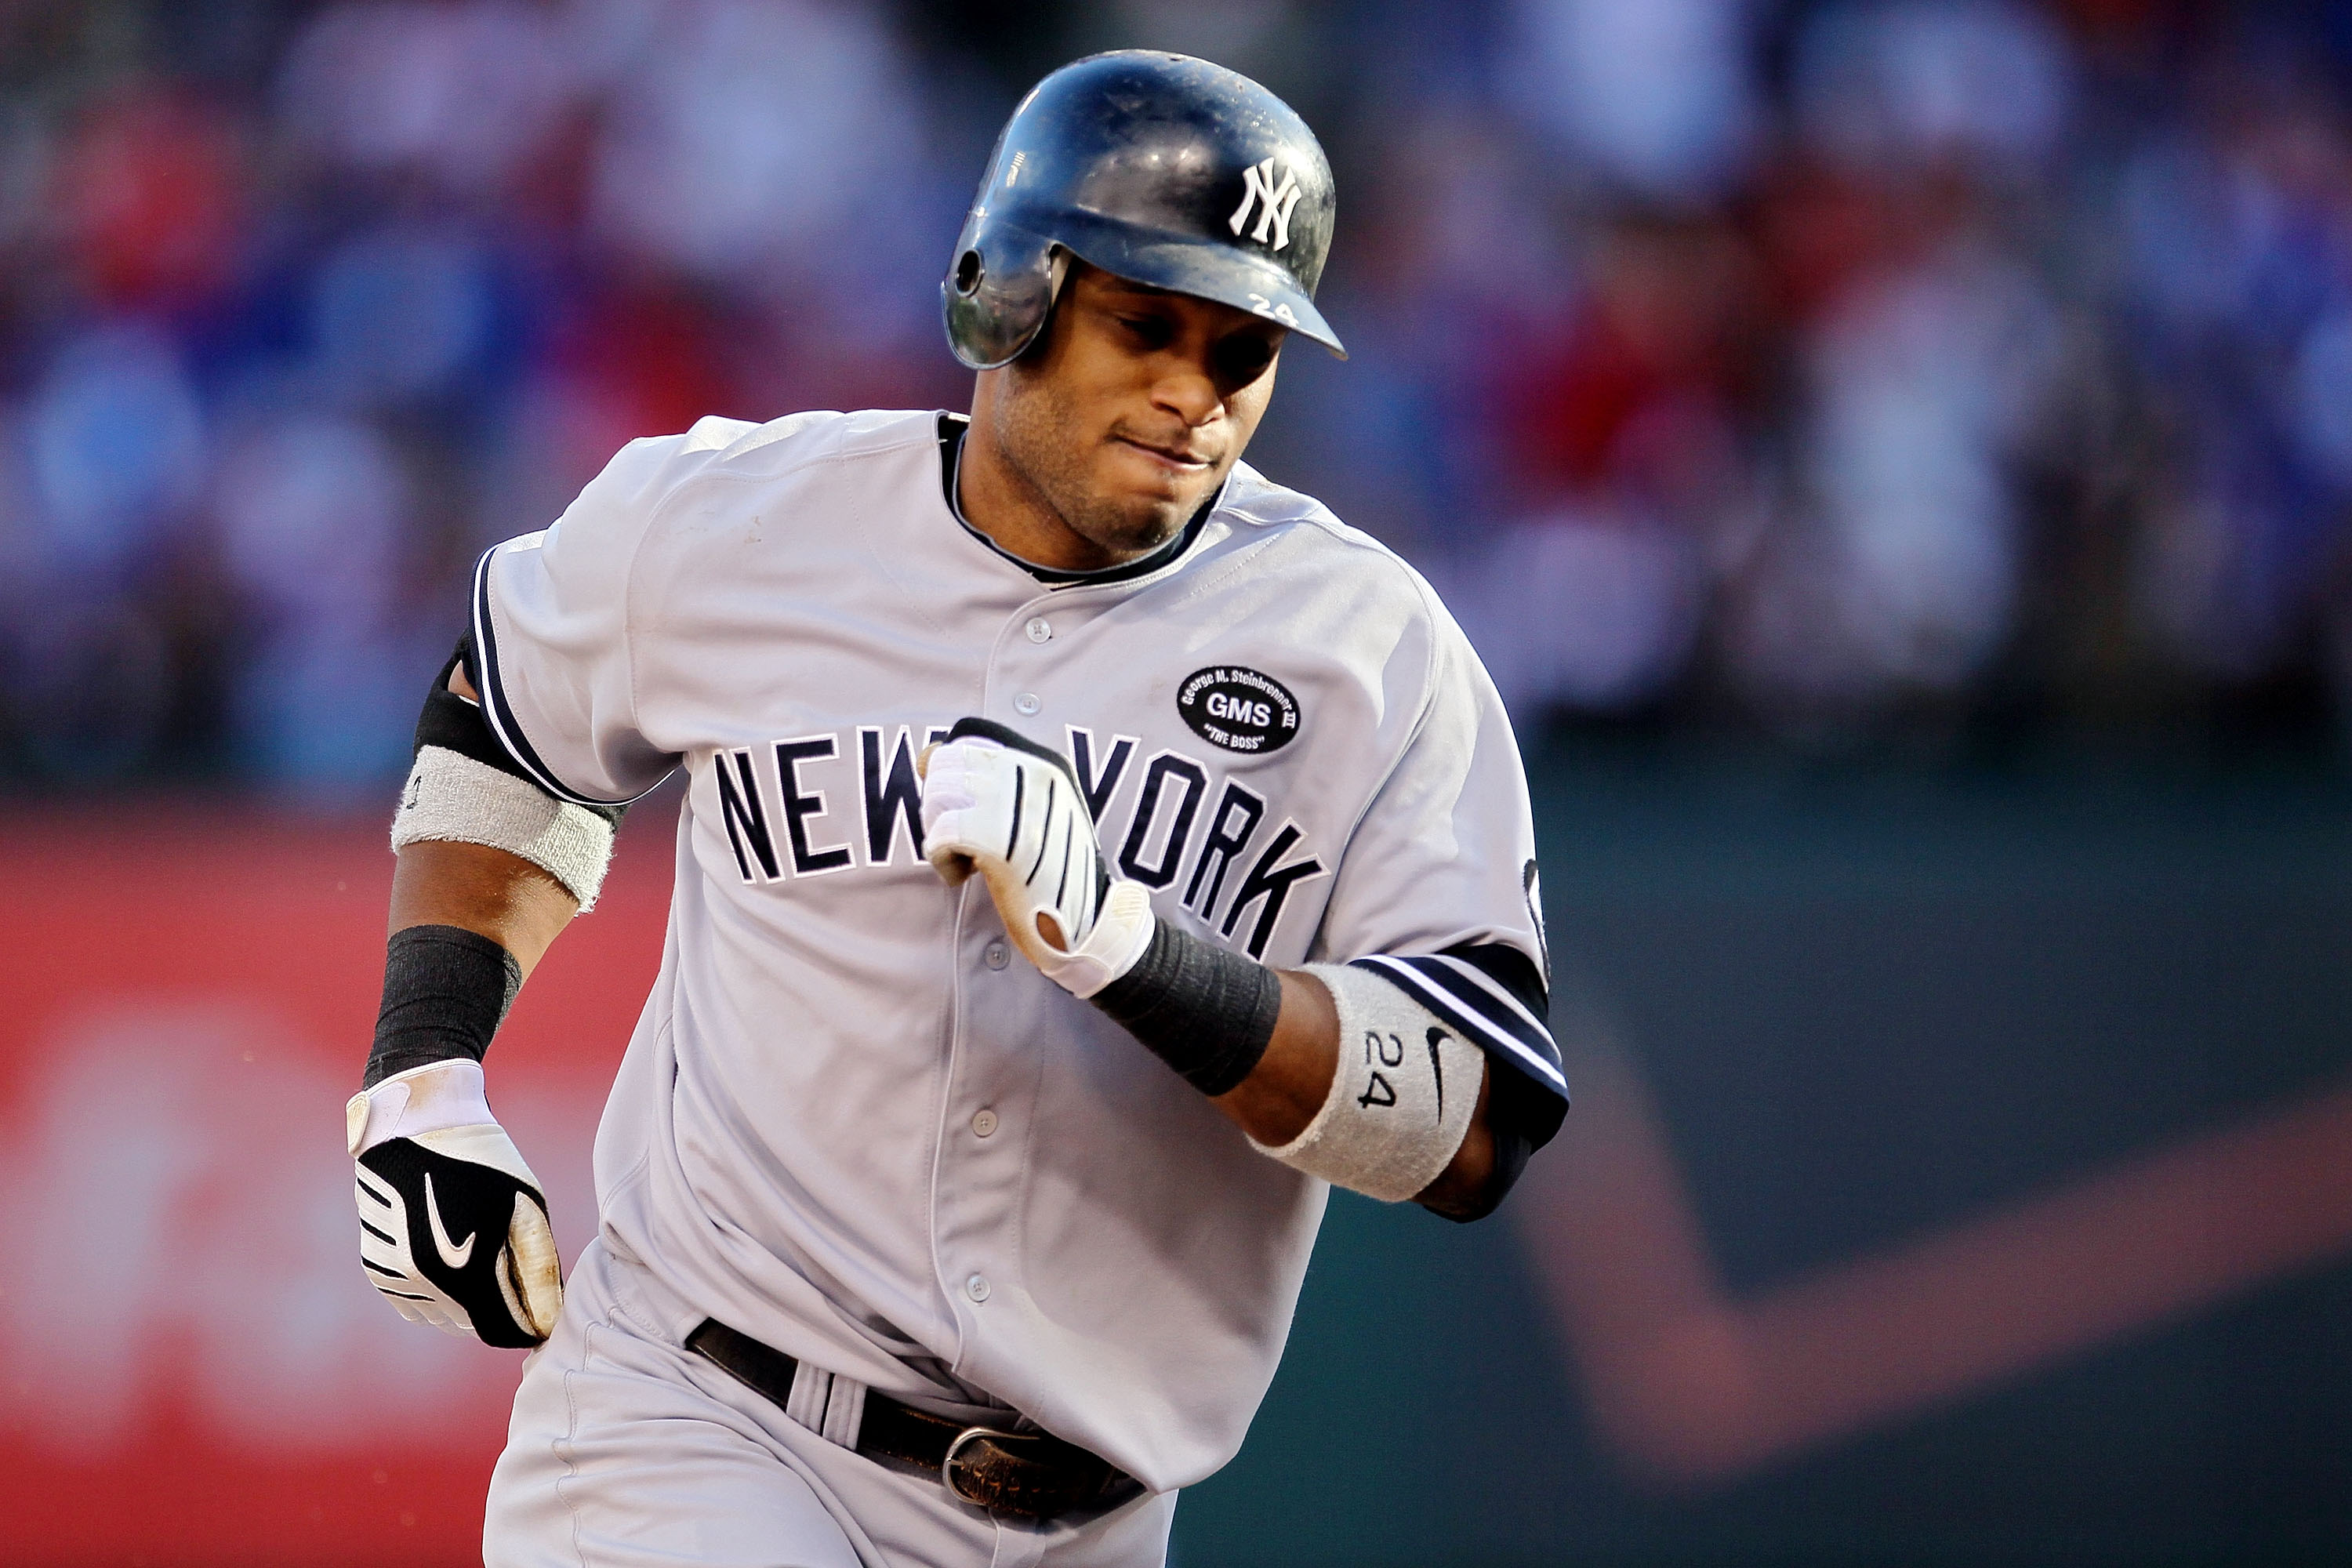 ARLINGTON, TX - OCTOBER 16:  Robinson Cano #24 of the New York Yankees rounds the bases after hitting a solo homerun in the sixth inning against the Texas Rangers in Game Two of the ALCS during the 2010 MLB Playoffs at Rangers Ballpark in Arlington on Oct